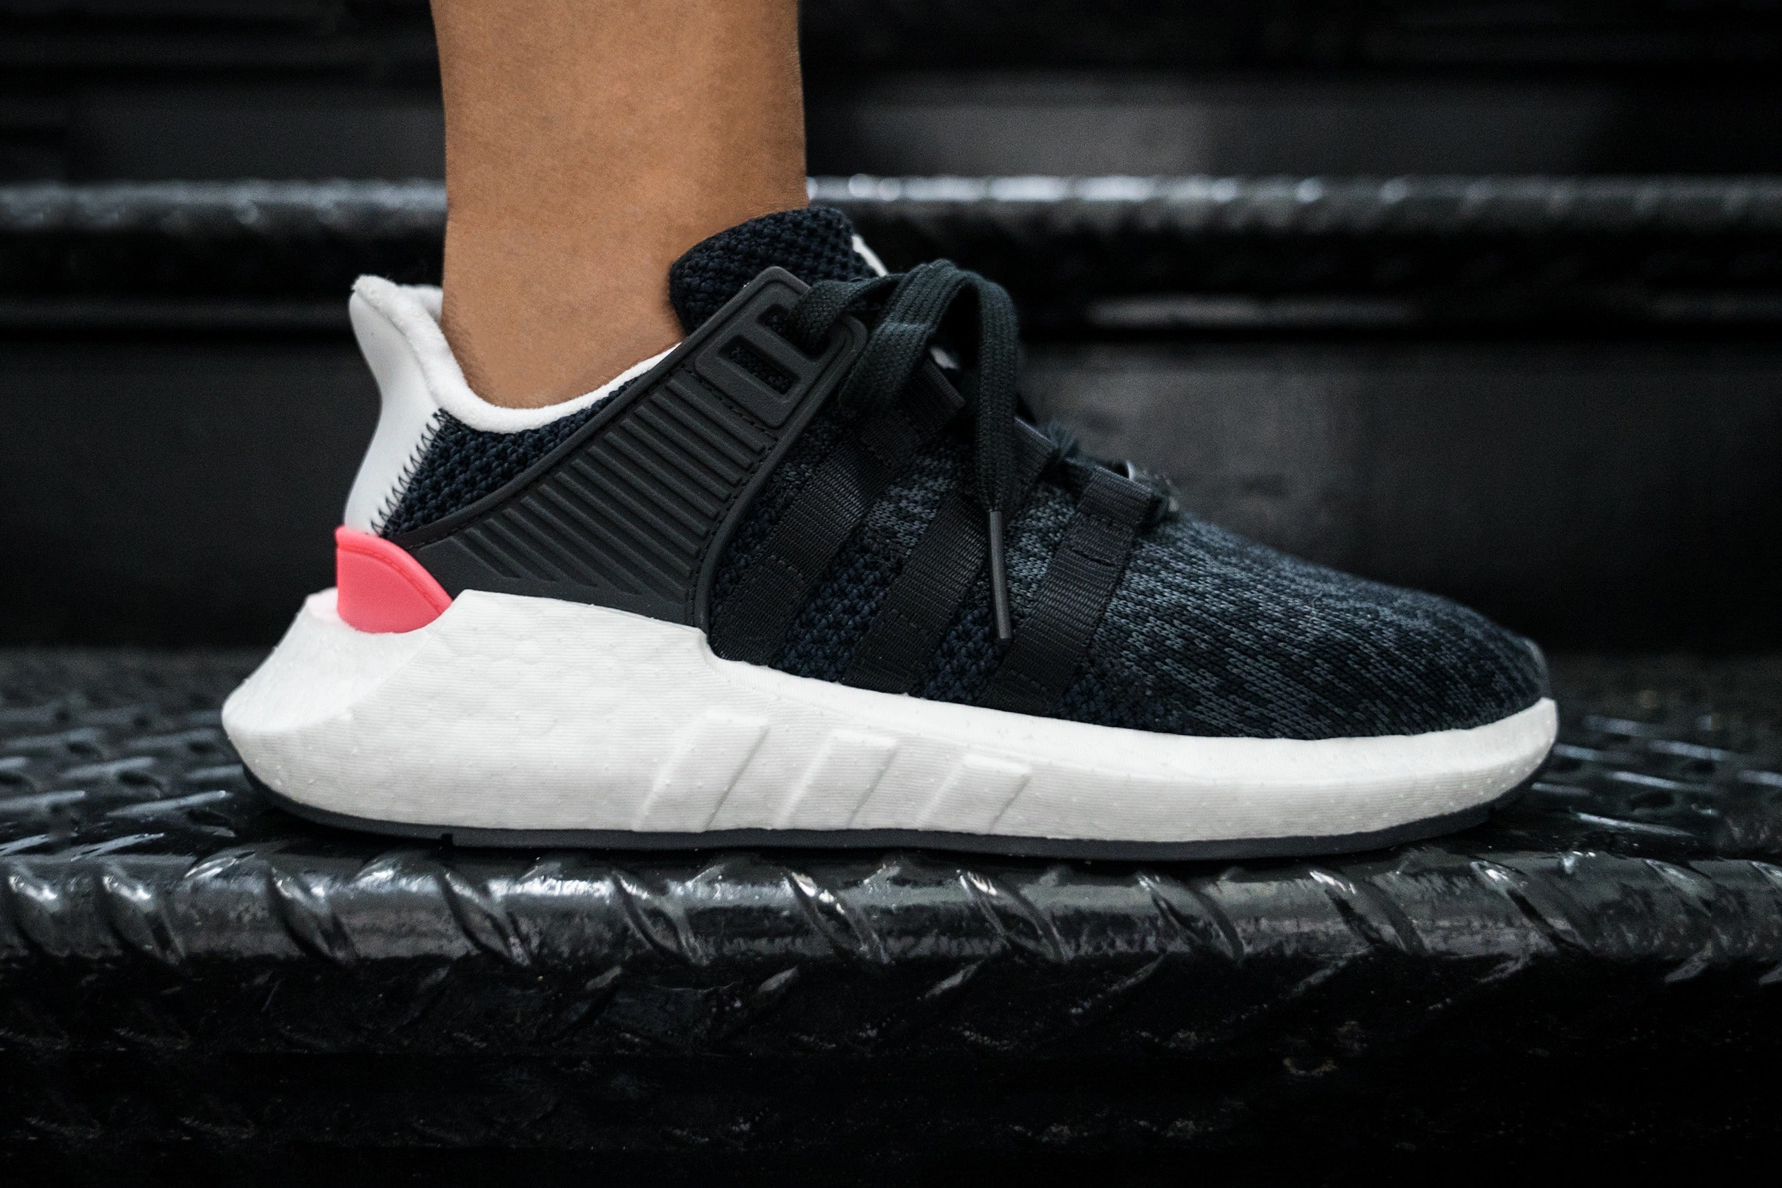 adidas Footwear Releases in 2017 ultra boost yeezy boost sneakers  streetwear adidas Originals unveiled a new EQT ...